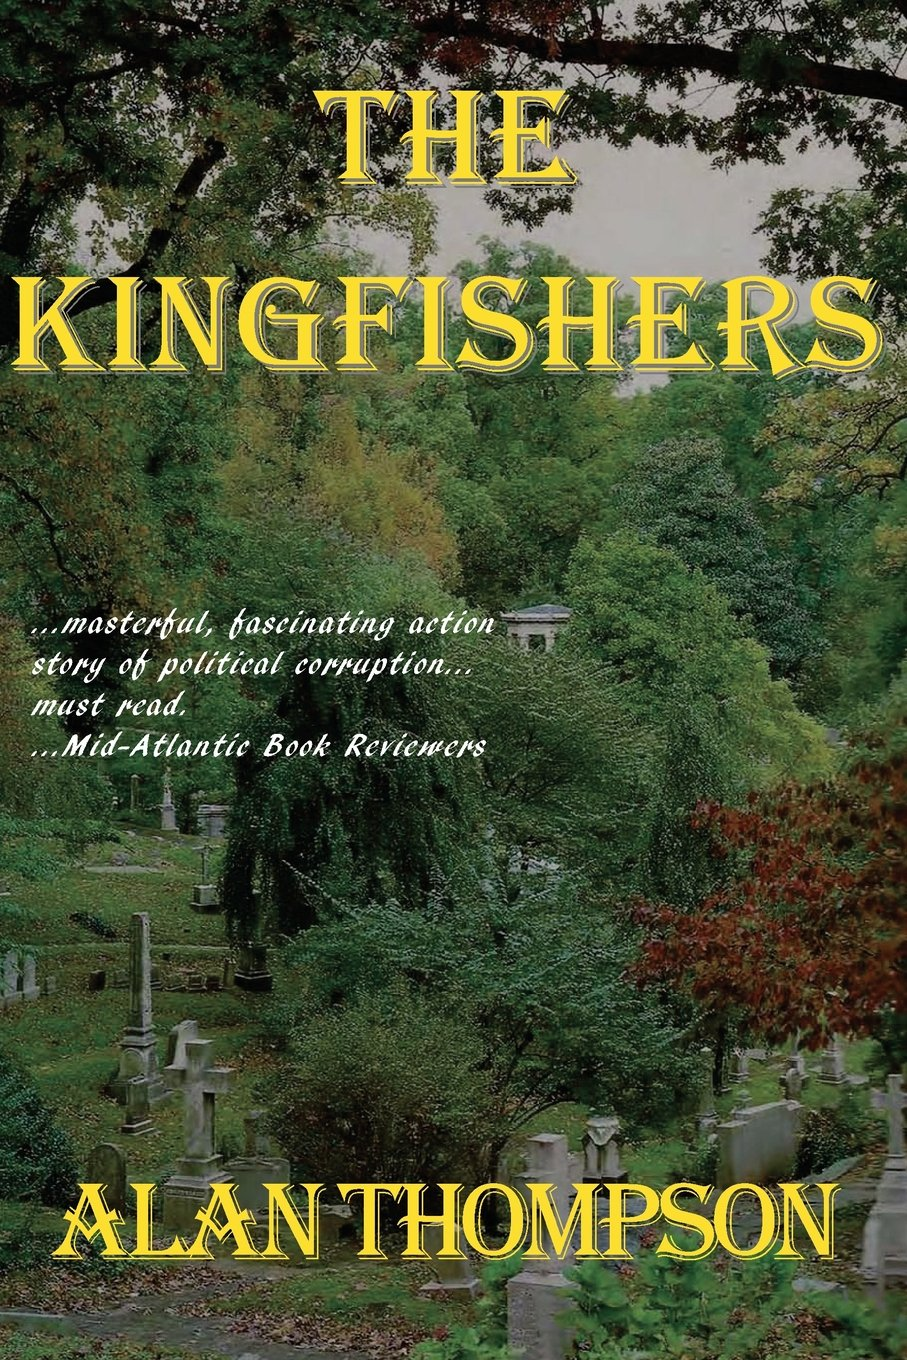 The Kingfishers by Alan Thompson